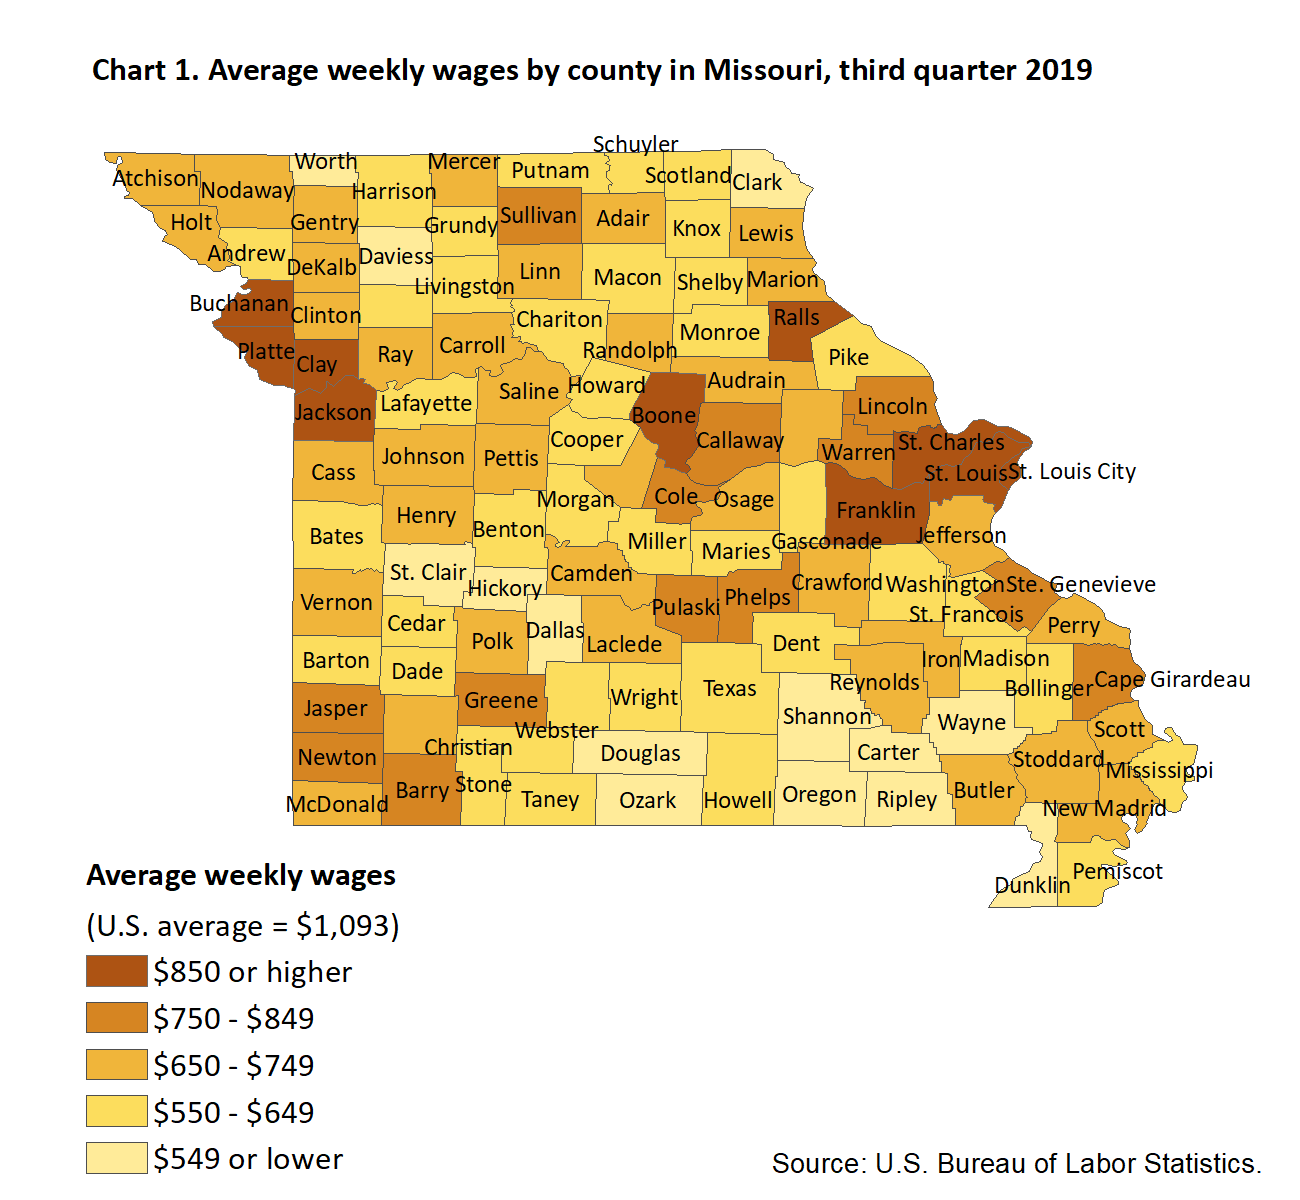 Chart 1. Average weekly wages by county in Missouri, third quarter 2019